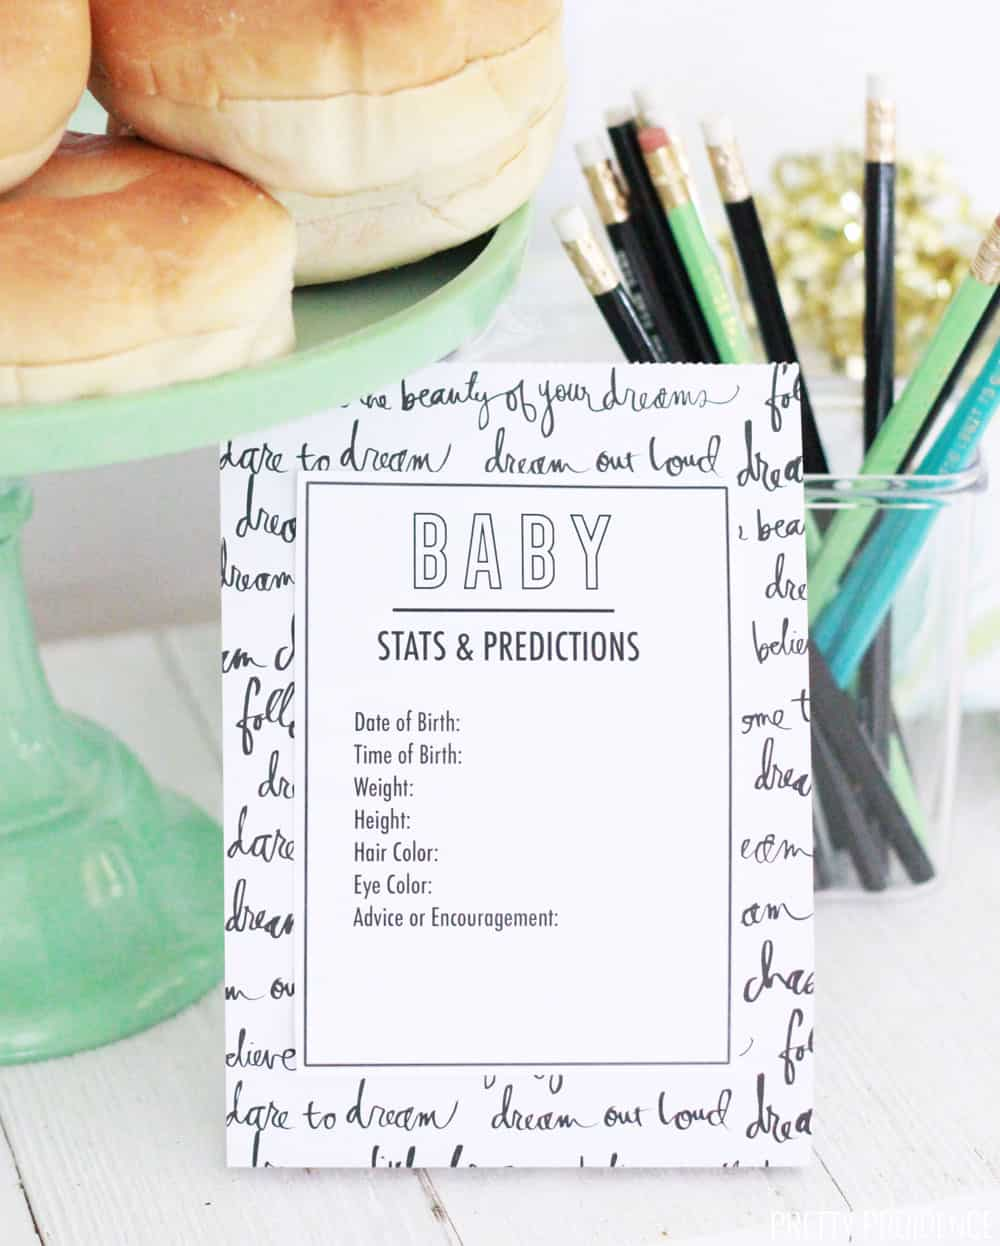 Baby Stats and Predictions Baby Shower Printable